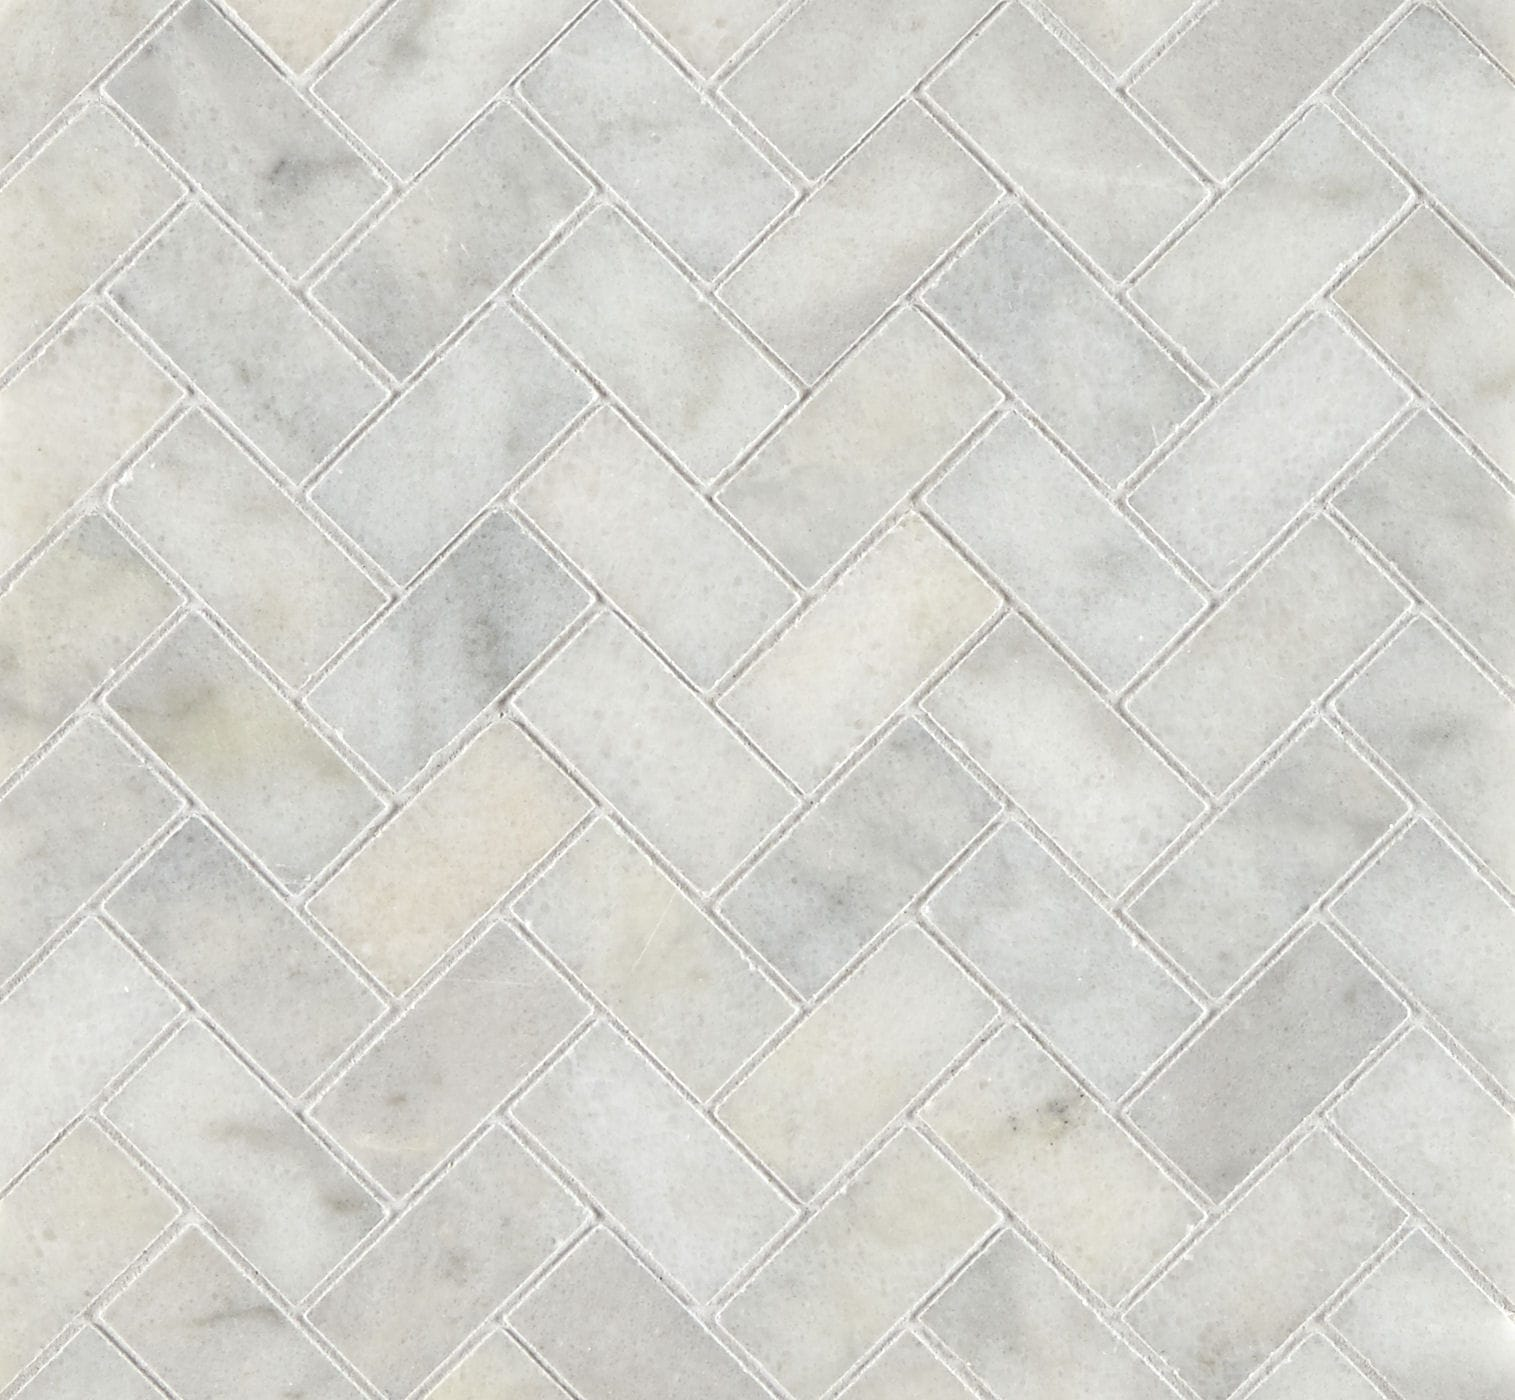 Calacatta Honed Marble Herringbone Mosaic Tiles